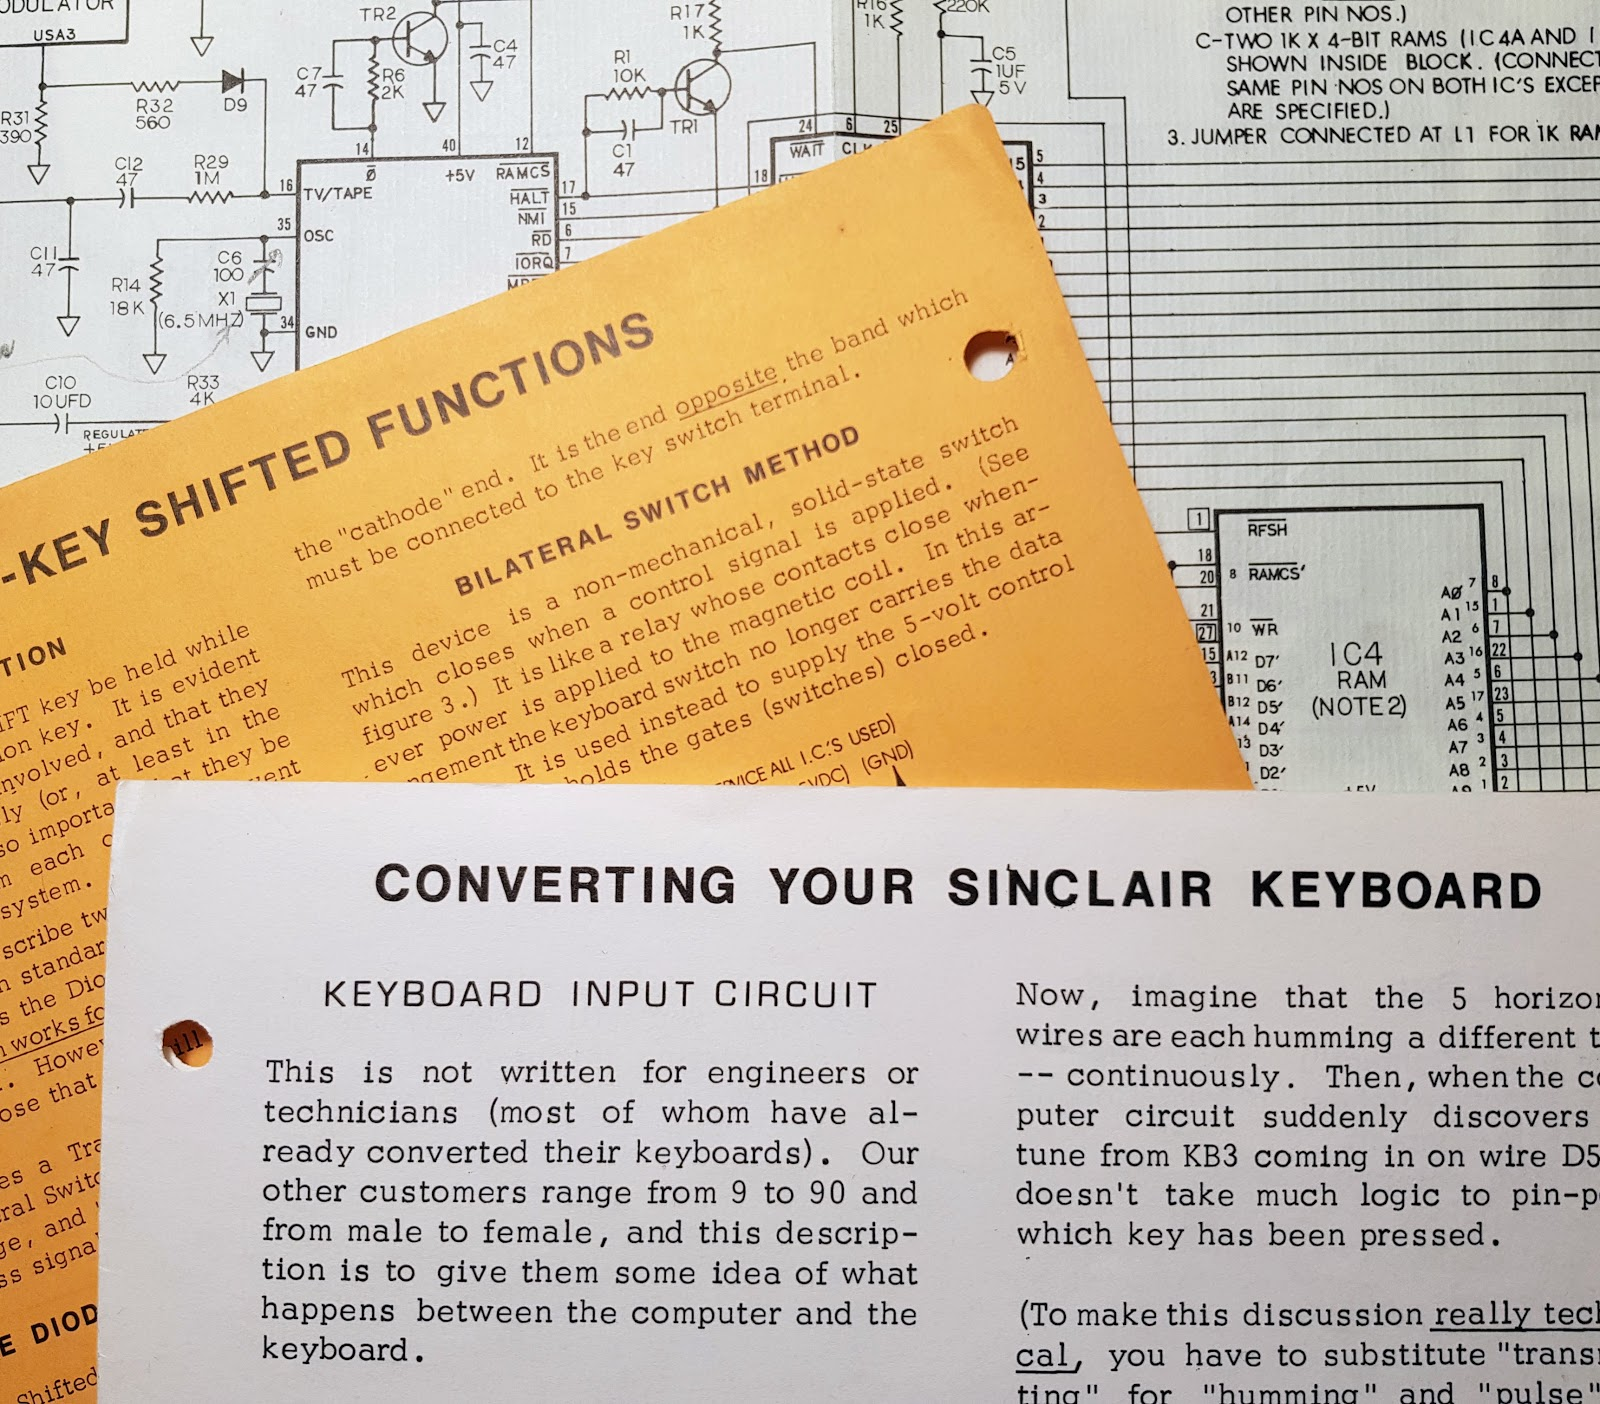 Zx81 Keyboard Adventure Circuit Diagram Converting Your Sinclair Loose Leaf Pages From A Great Little Text